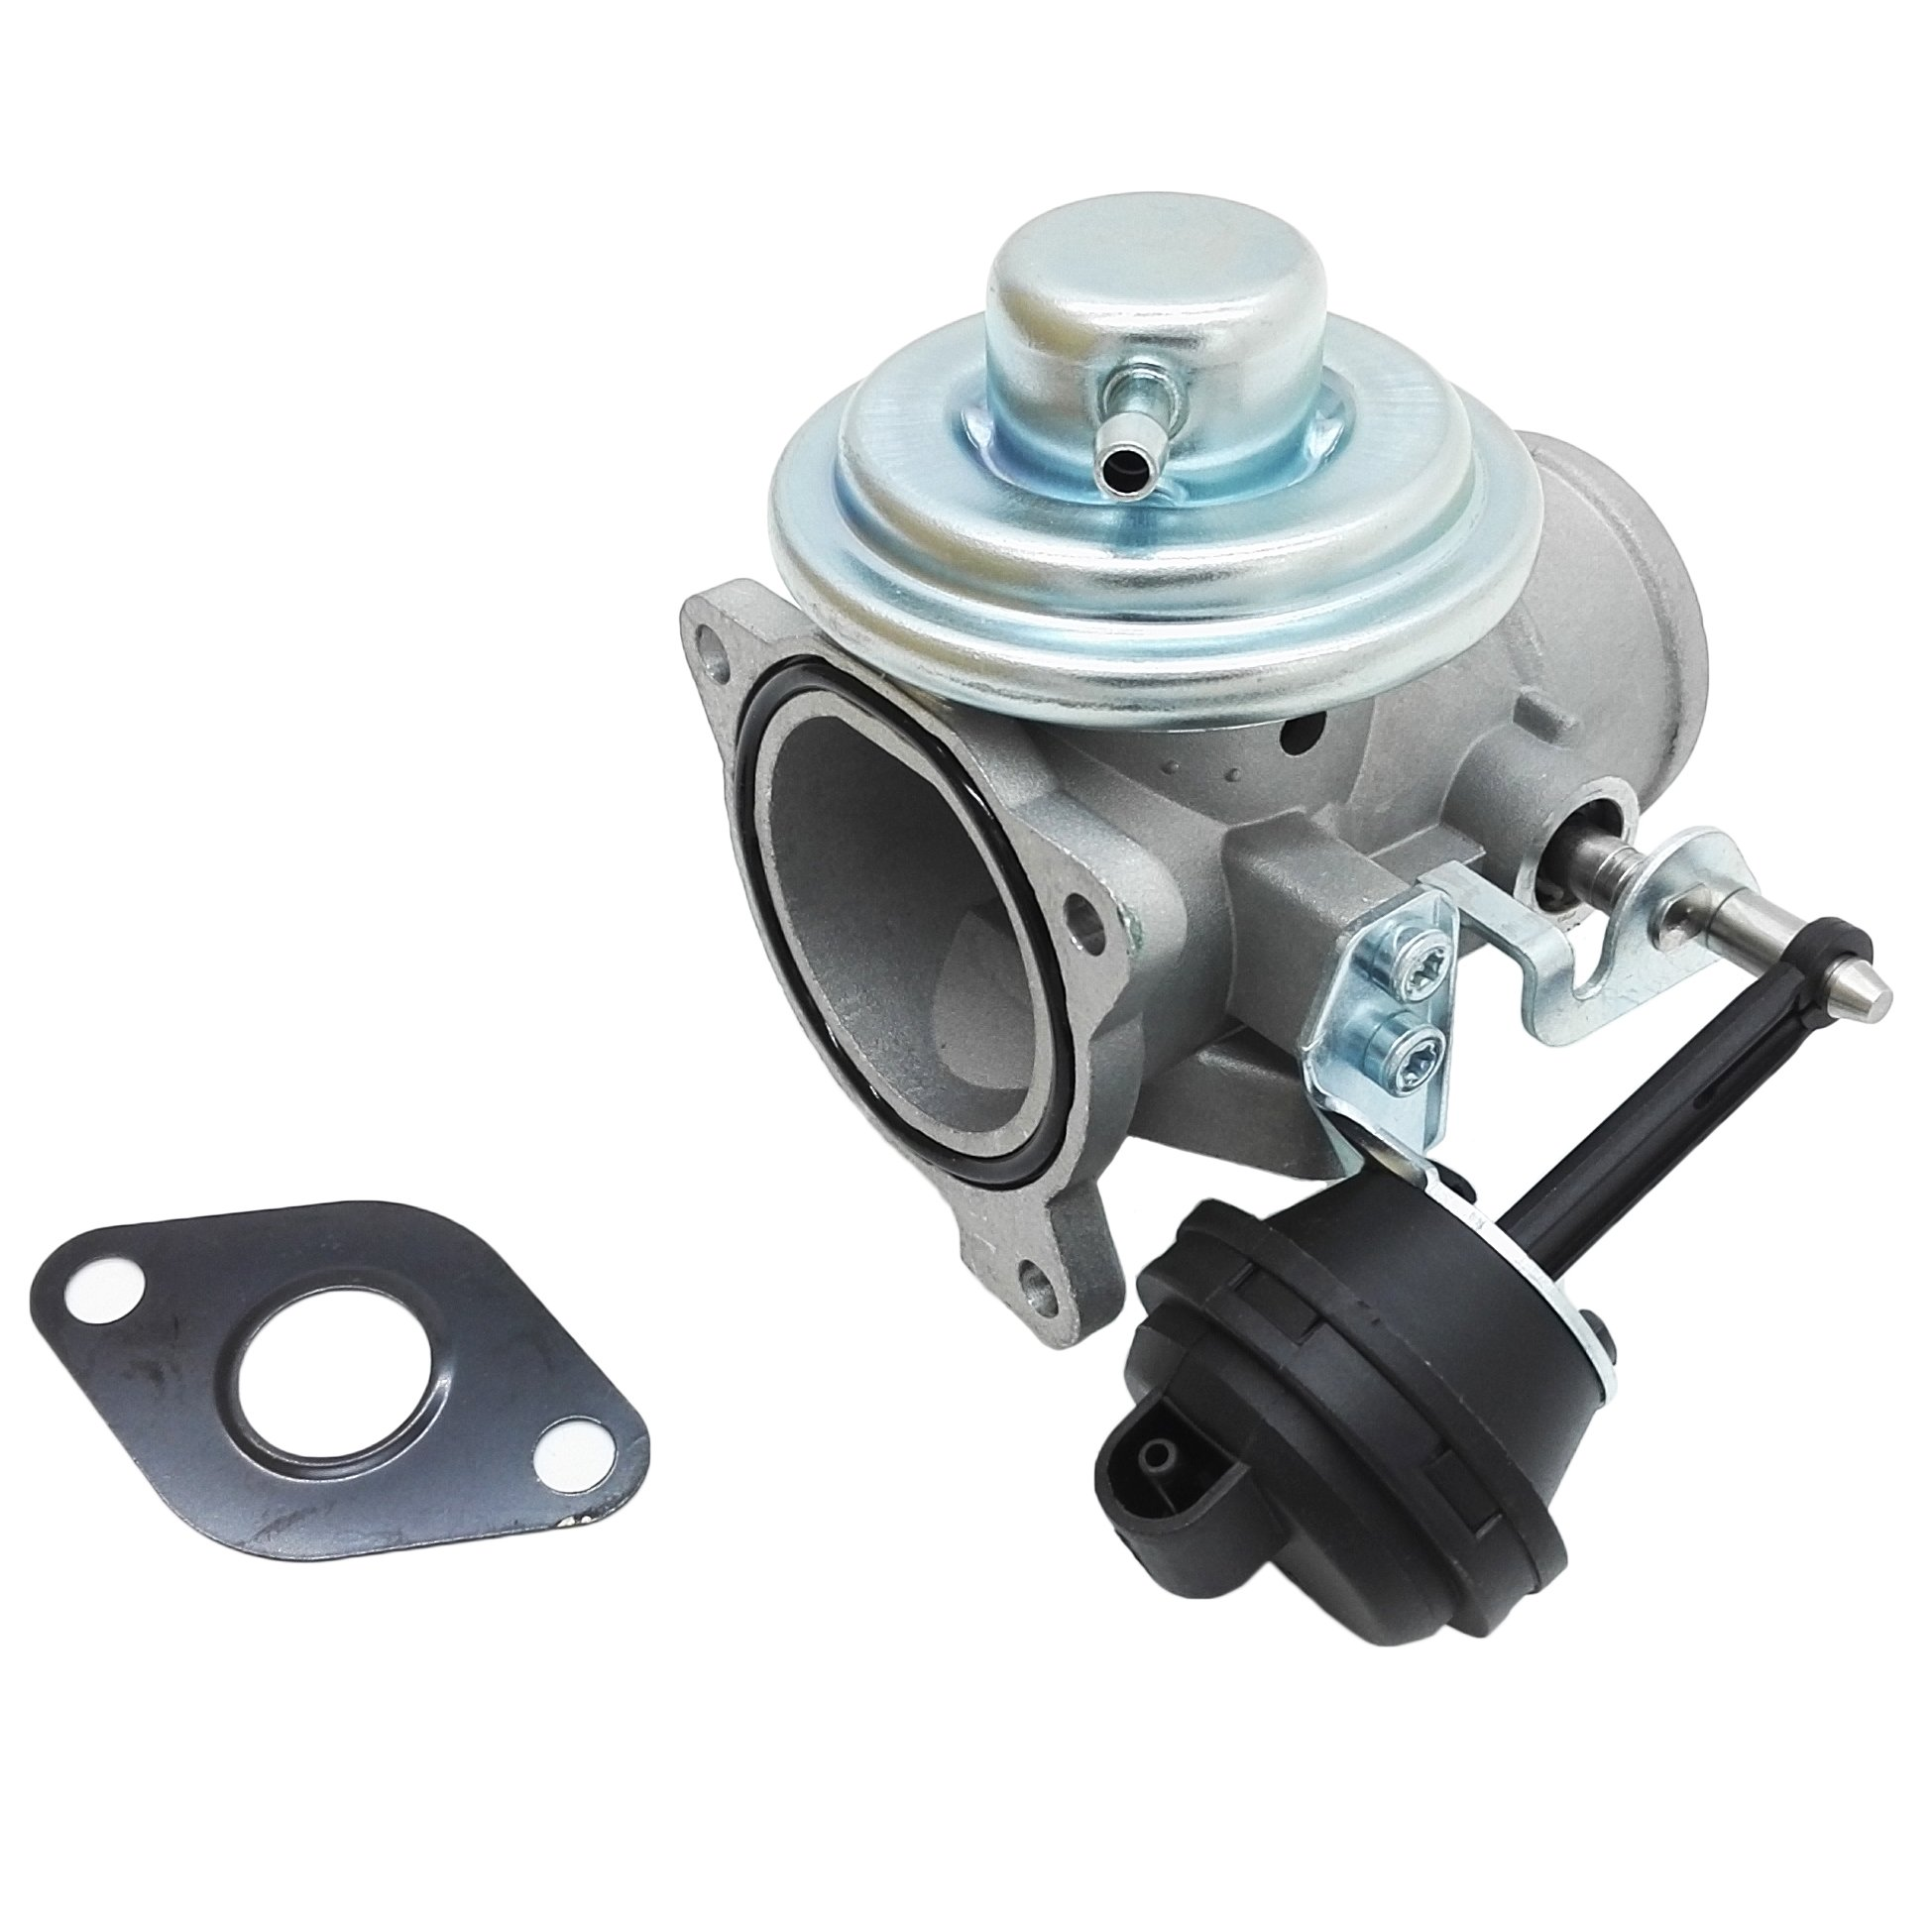 OKAY MOTOR Exhaust Gas Recirculation Valve for 1998-2004 VW New Beetle Jetta IV Golf IV 1.9 TDI